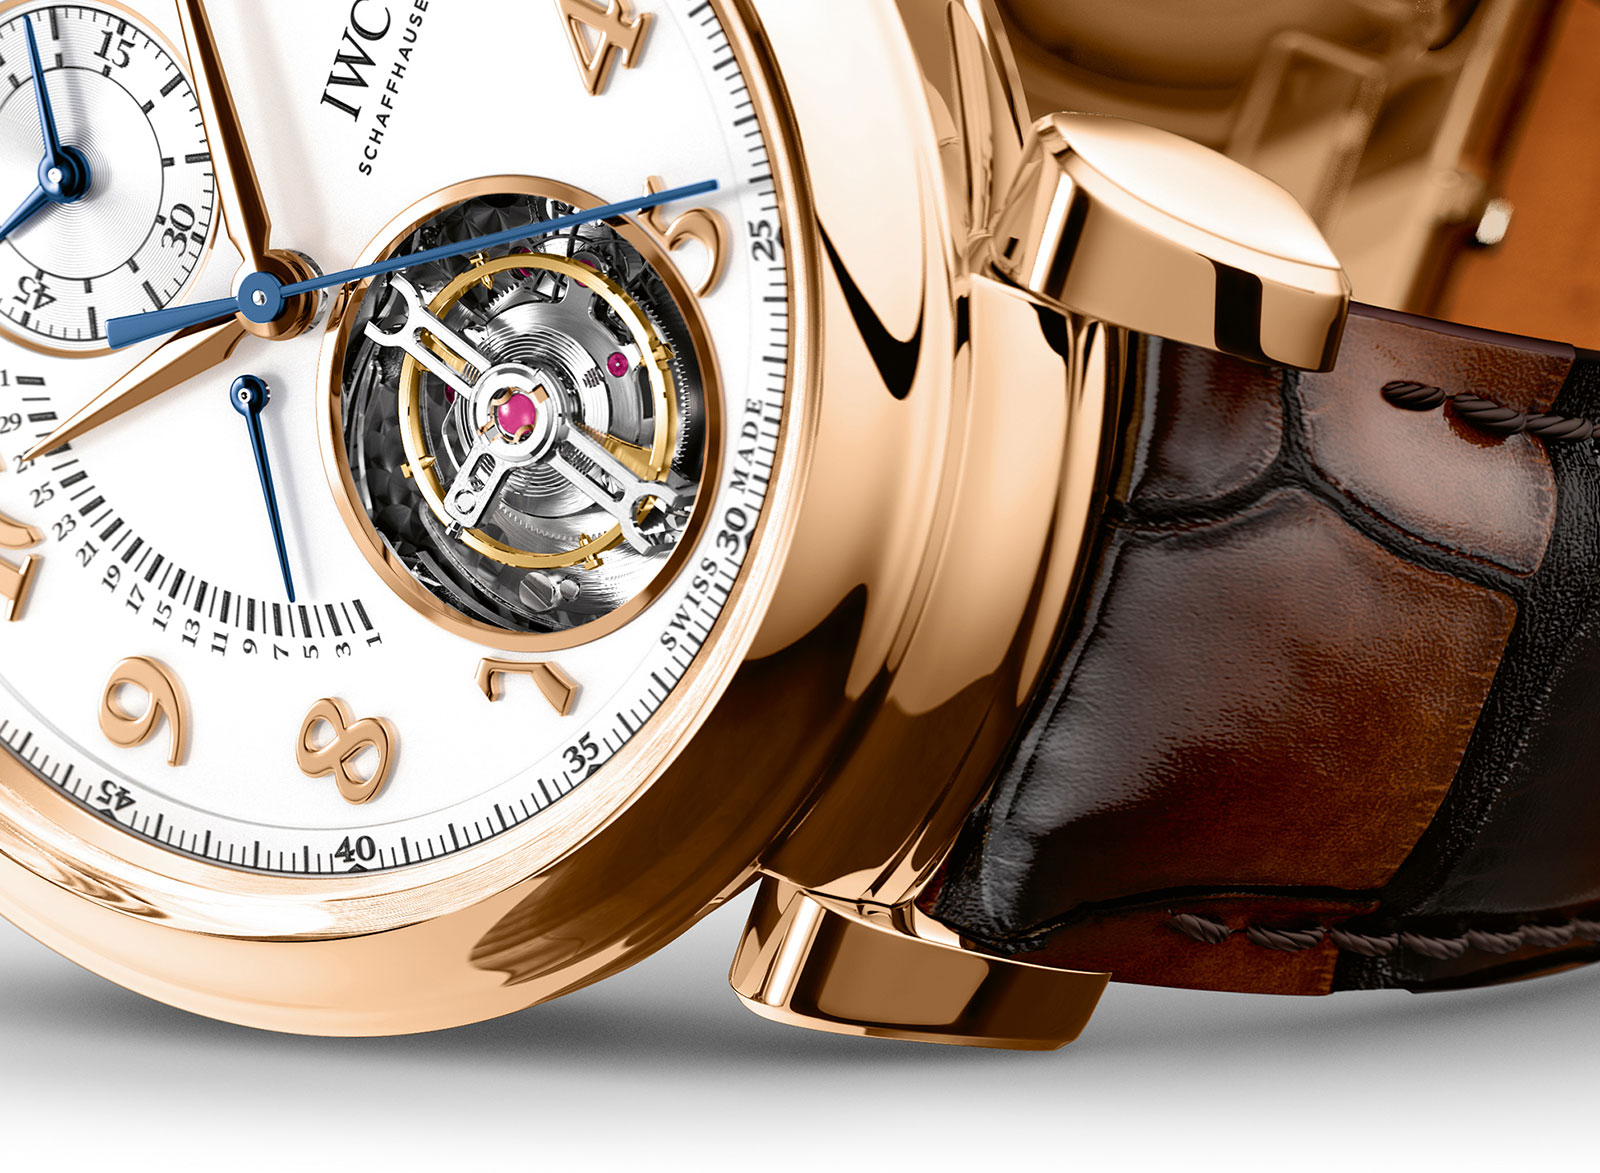 IWC Da Vinci Tourbillon Retrograde Chronograph 2